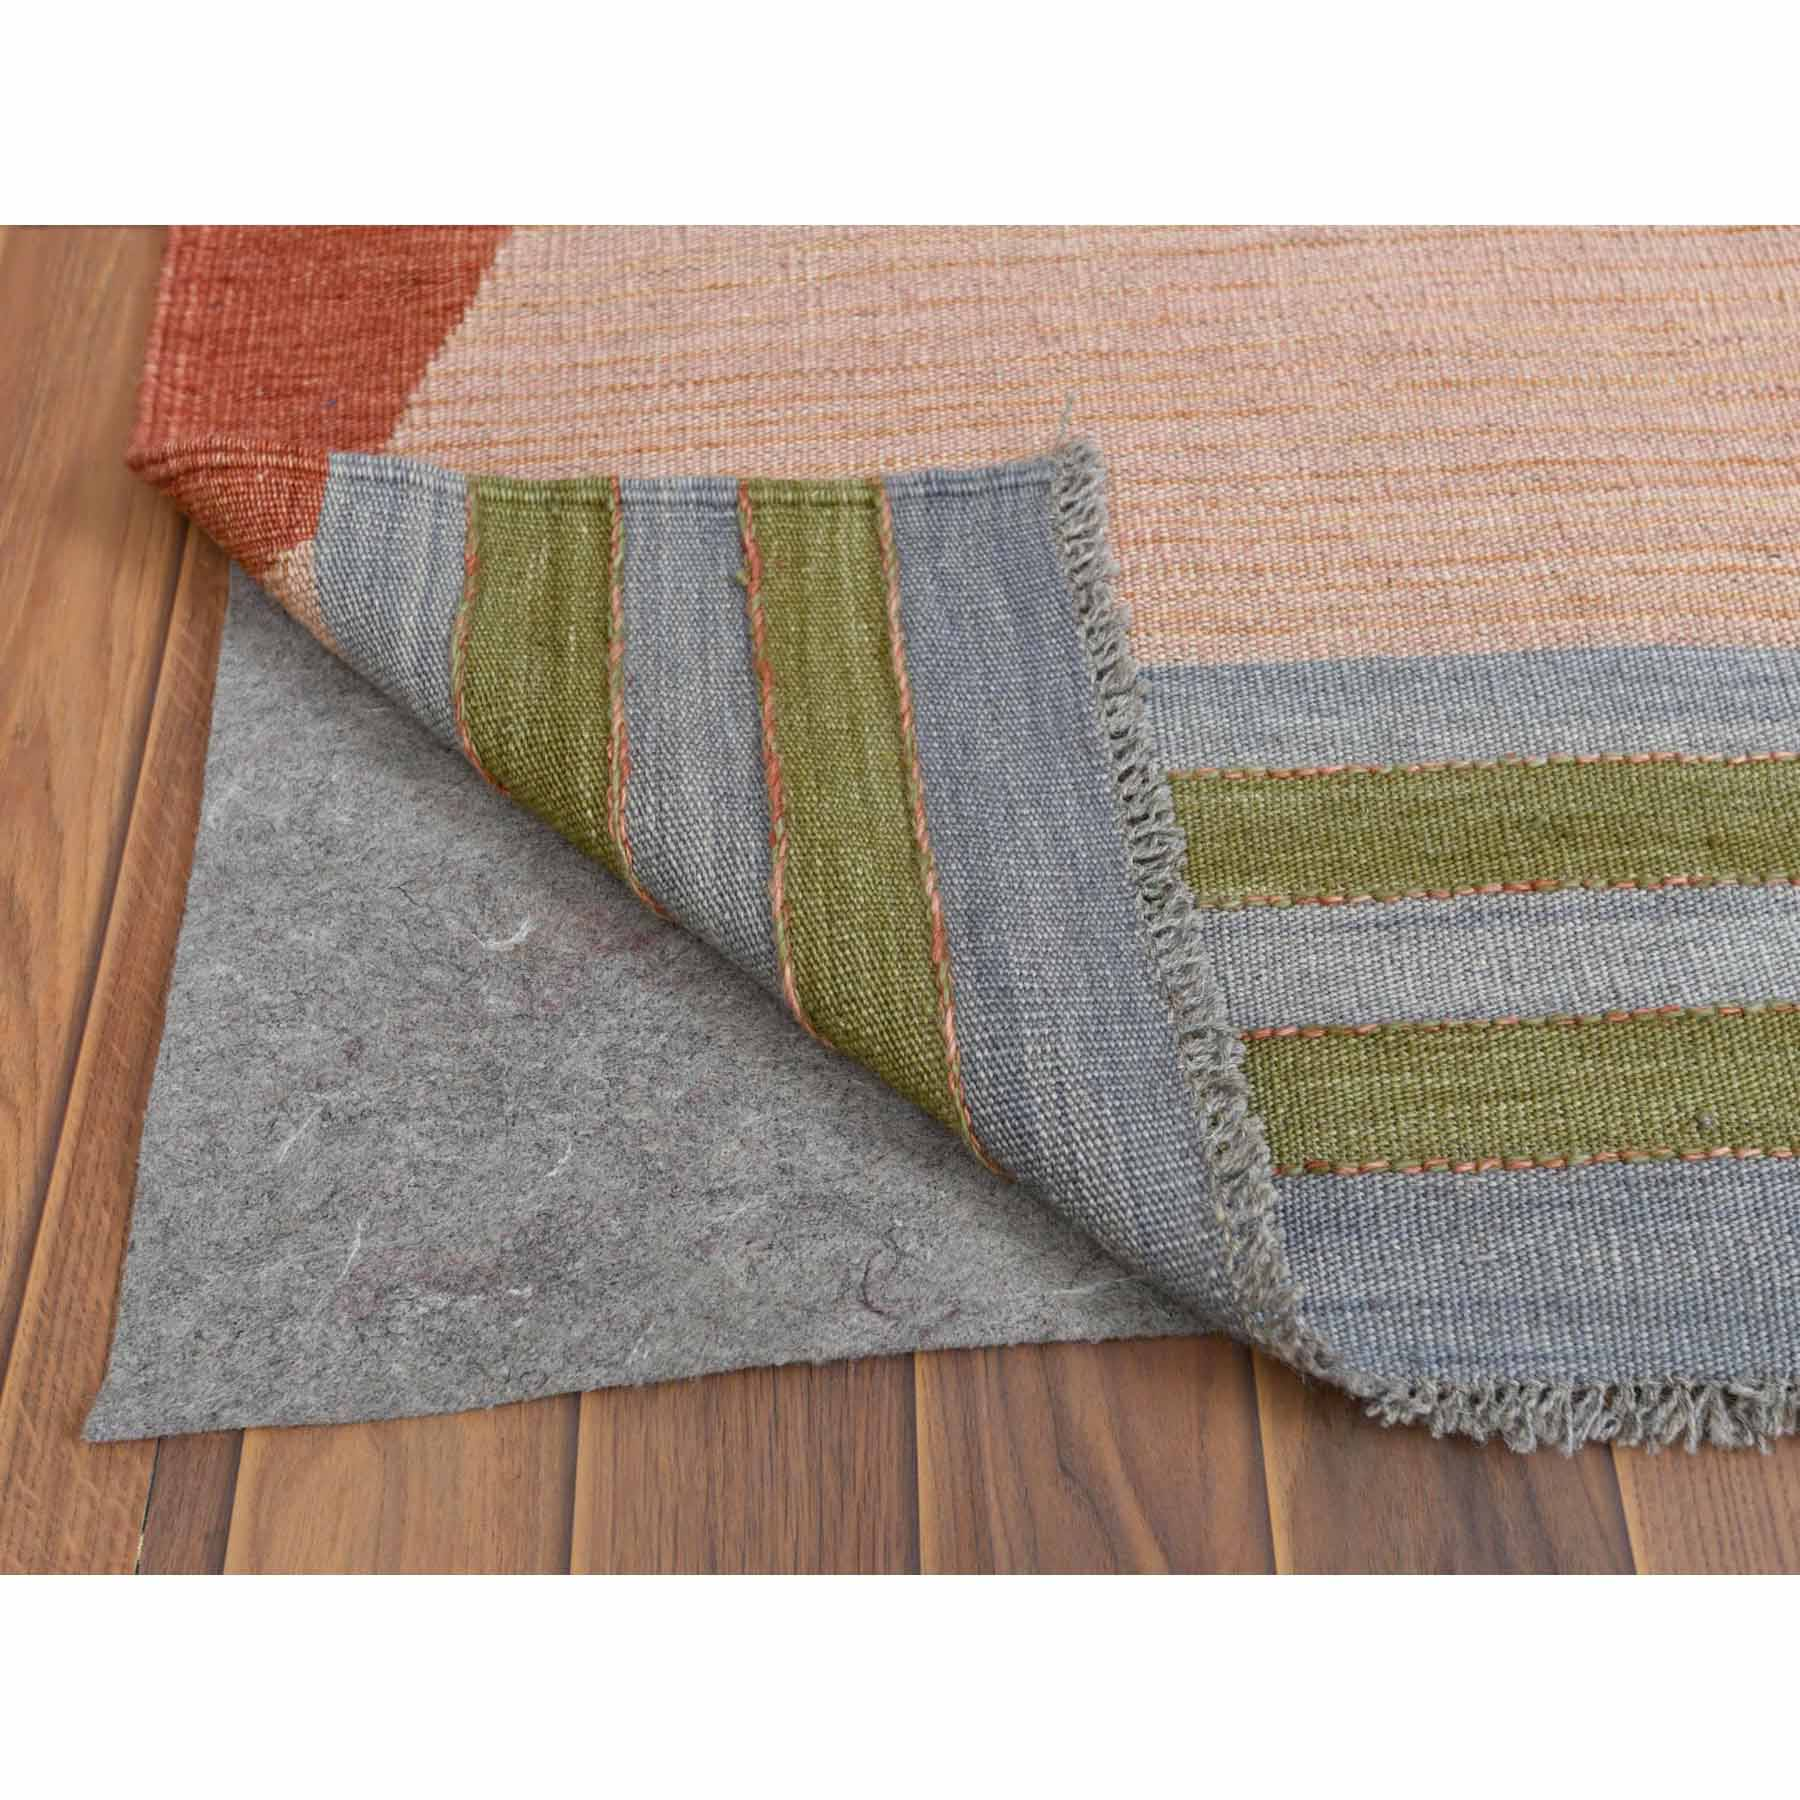 Flat-Weave-Hand-Woven-Rug-301490